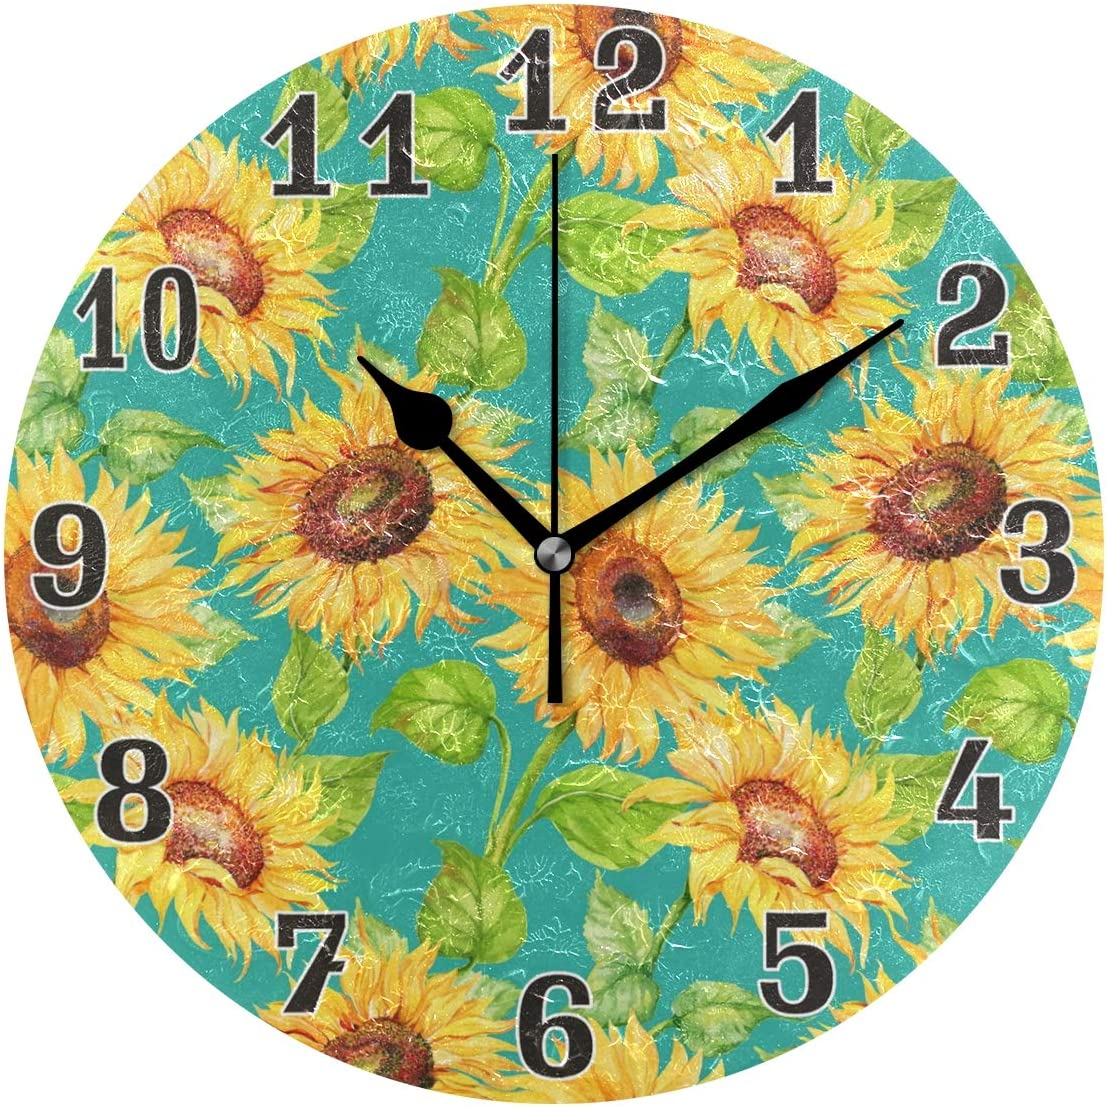 WXLIFE Vintage Floral Flower Sunflower Round Acrylic Wall Clock, Silent Non Ticking Art Painting for Kids Bedroom Living Room Office School Home Decor